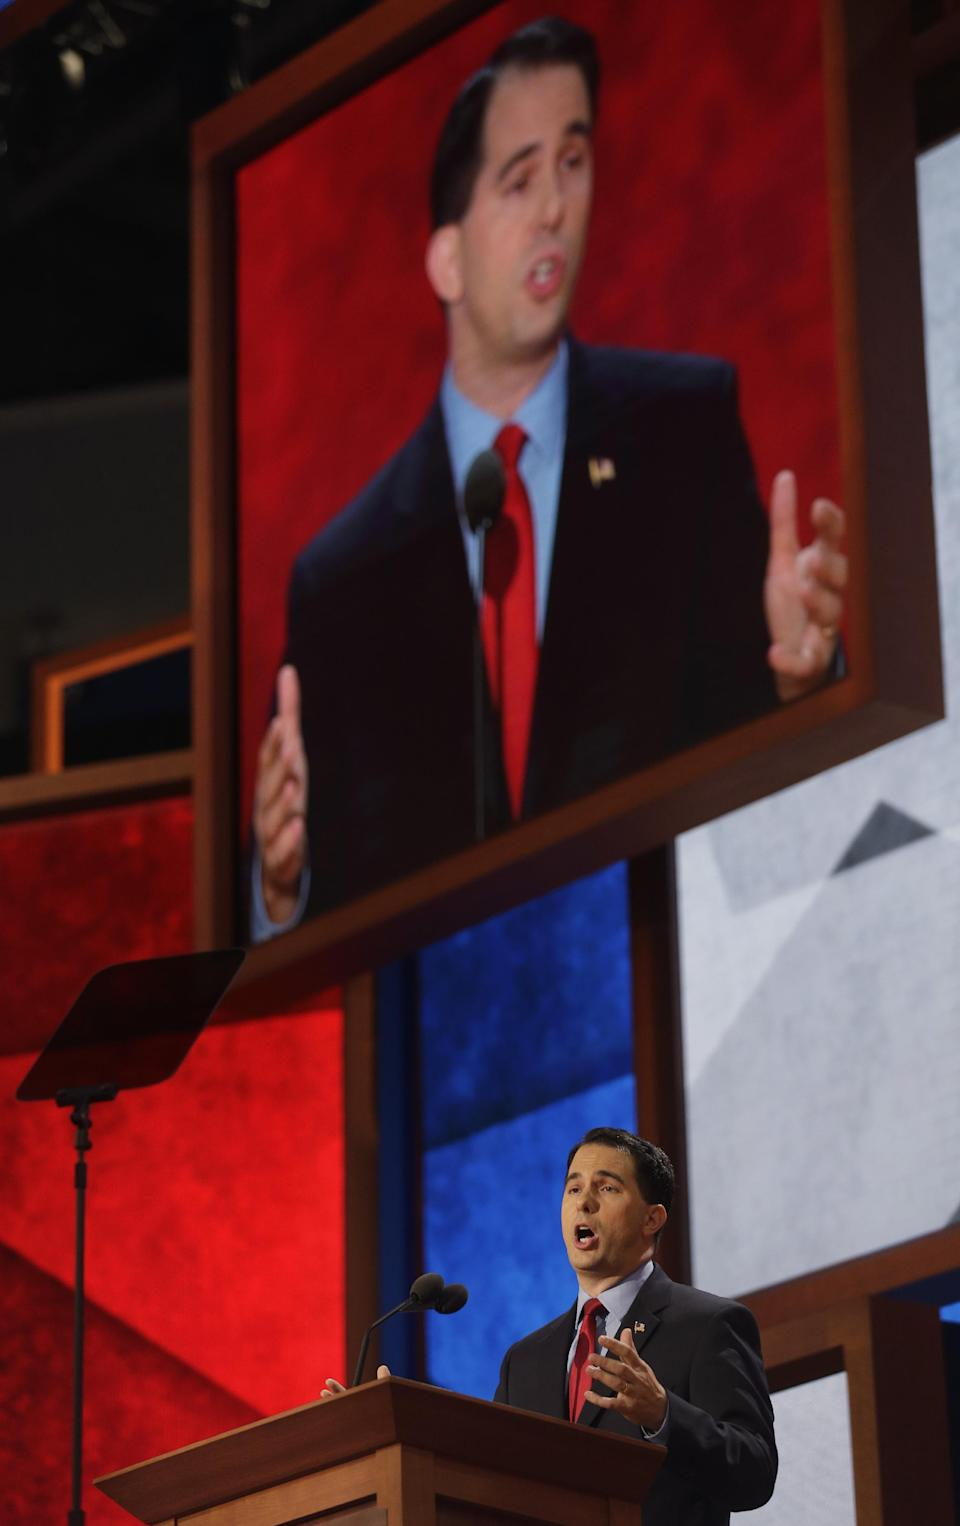 Wisconsin Gov. Scott Walker addresses Republican National Convention in Tampa, Fla., on Tuesday, Aug. 28, 2012.(AP Photo/Charles Dharapak)